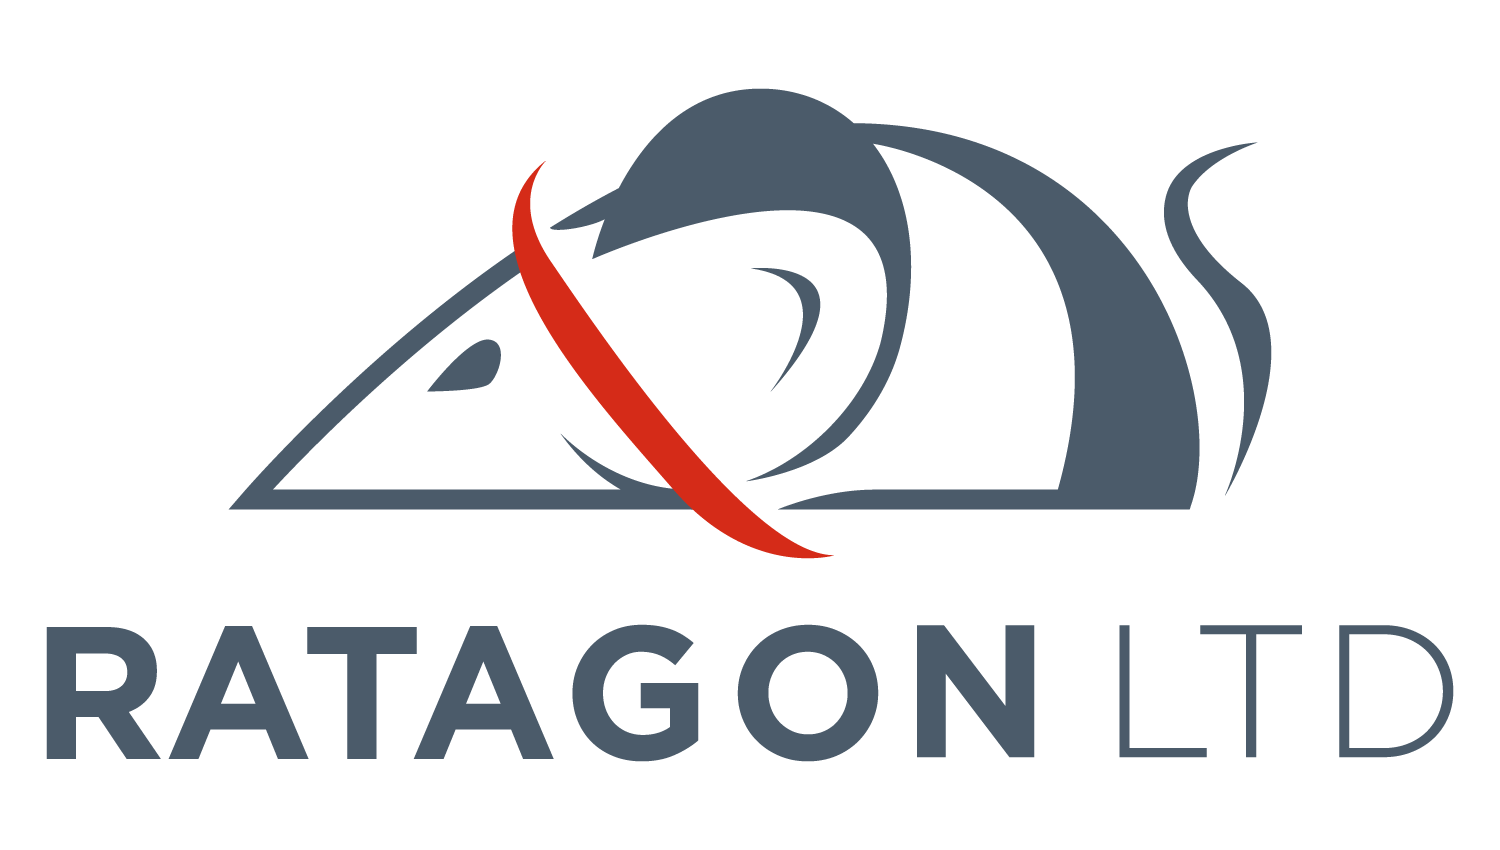 Ratagon_Logo_file_May_17.png